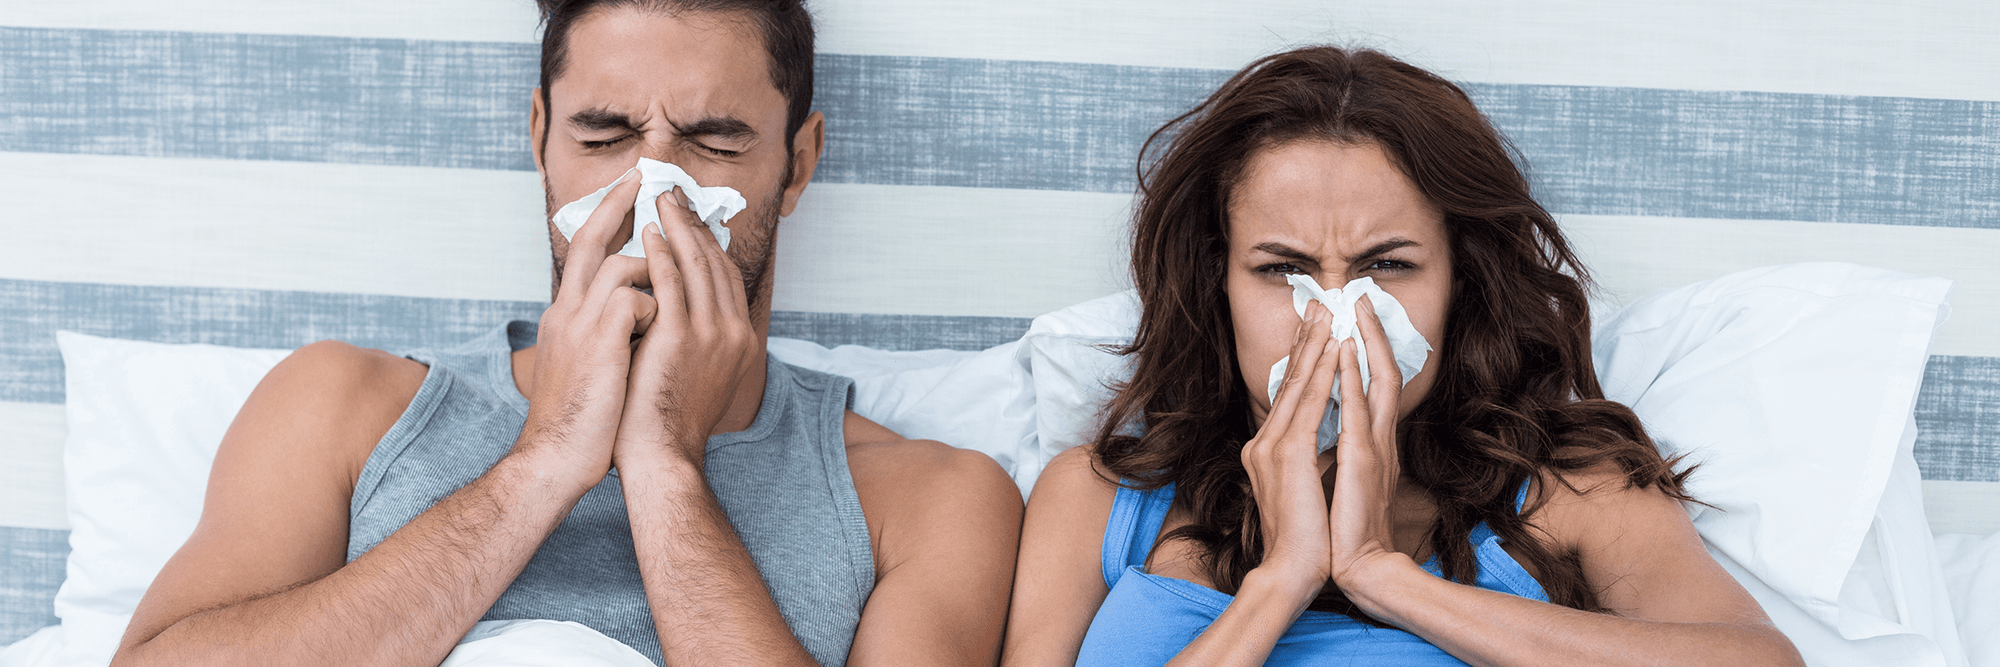 5 Tips to Feel Your Best This Cold and Flu Season